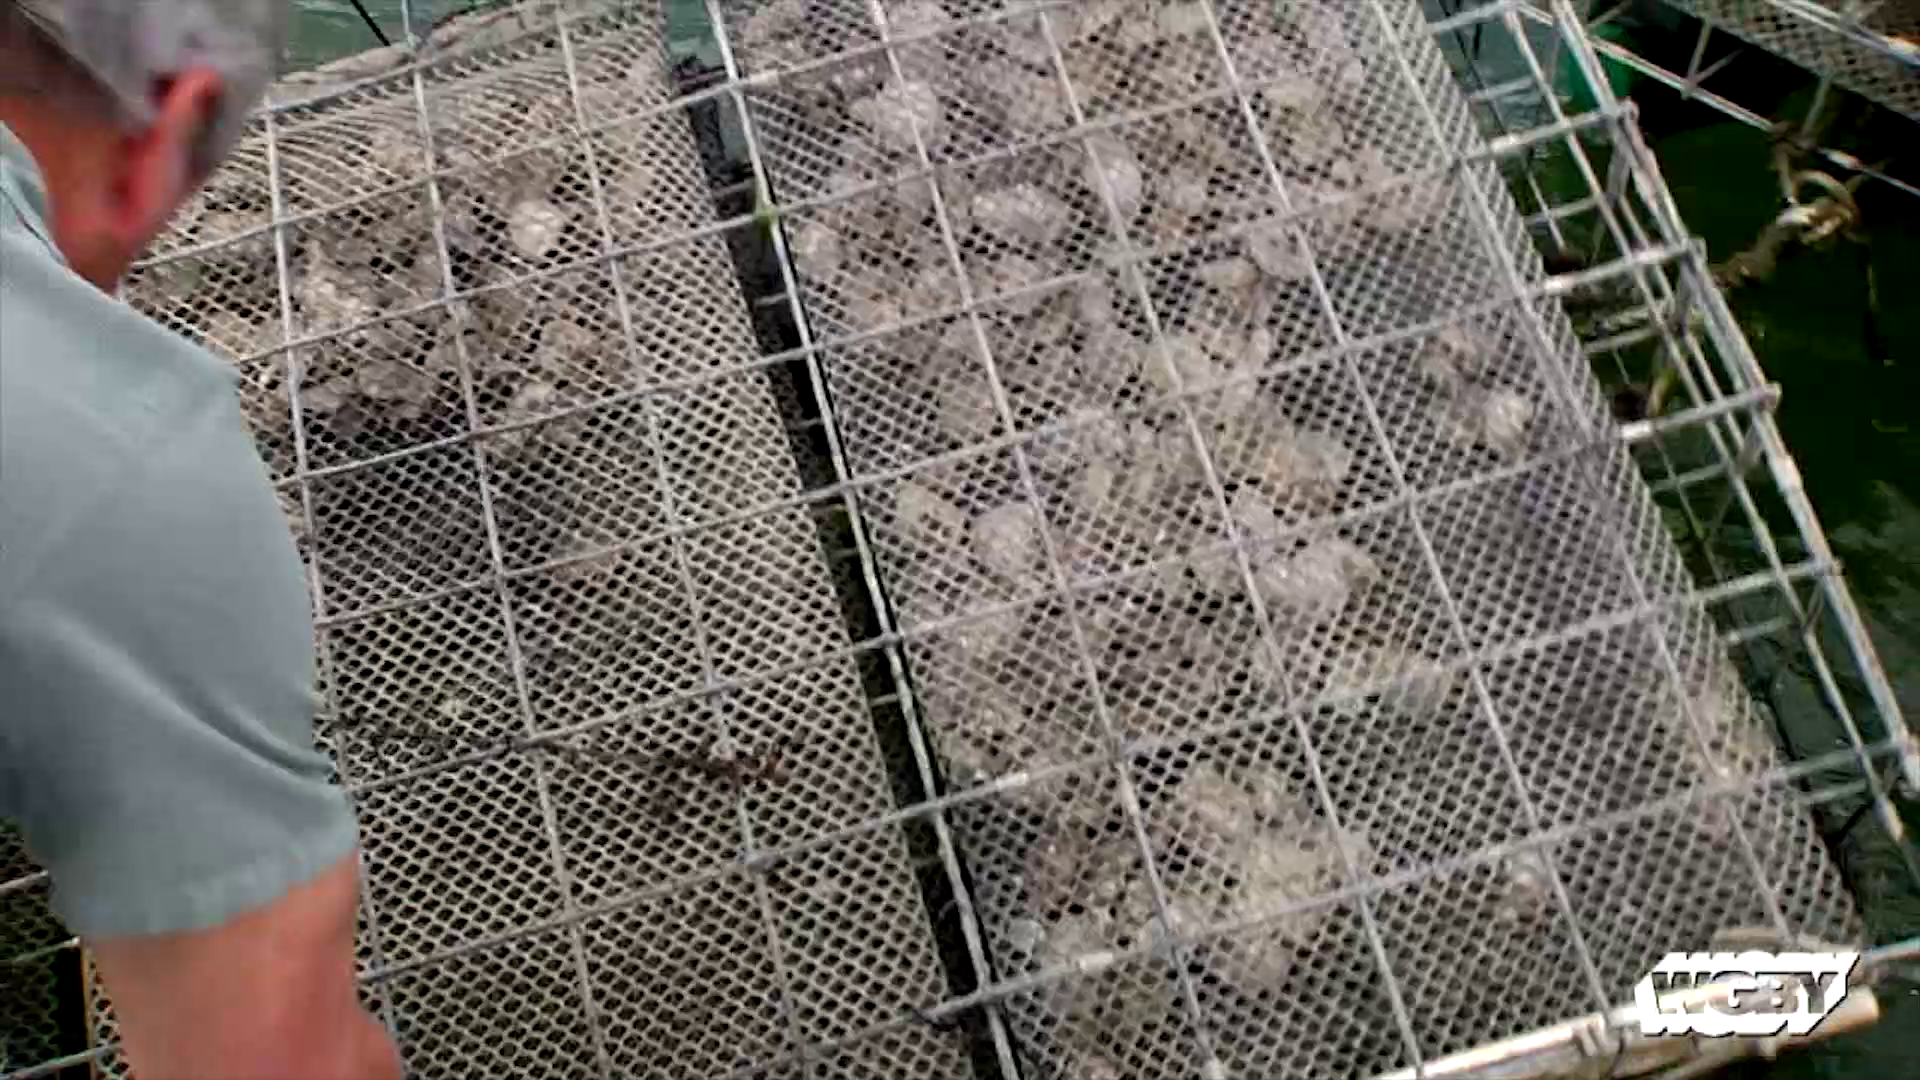 At a oyster farm in Maine, there's evidence that increasingly acidic ocean water is changing the make-up of one of New England's famous products–oysters.